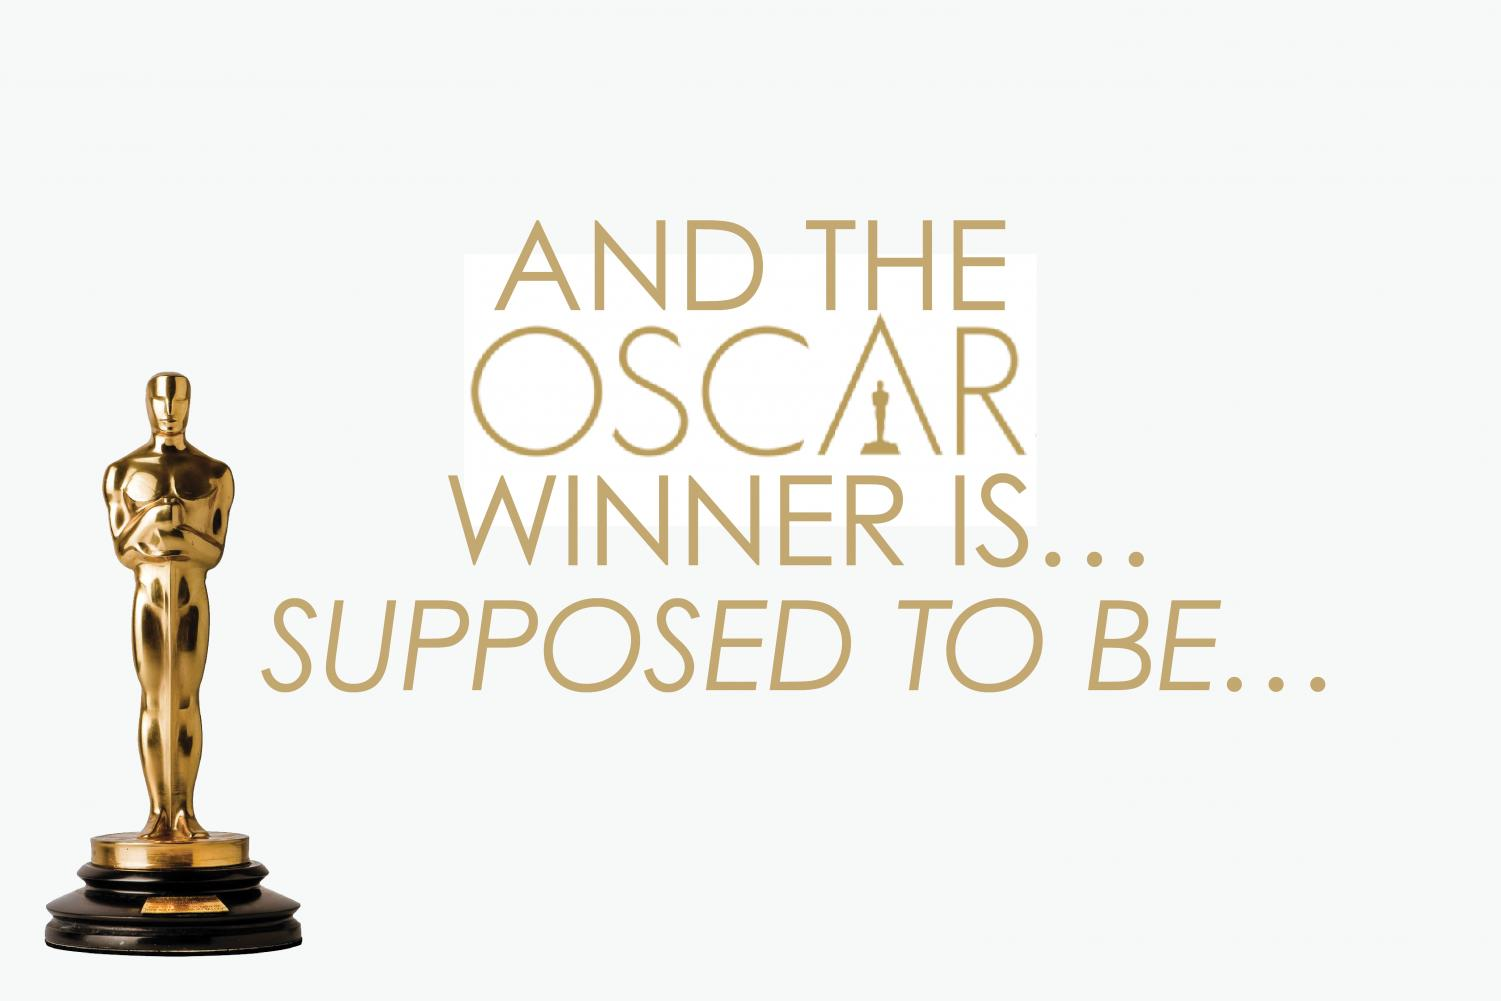 In the February print edition of the Inkspot, Kelsey Kern provided her picks for the Academy Awards major categories. Here are some of the highlights from that story.